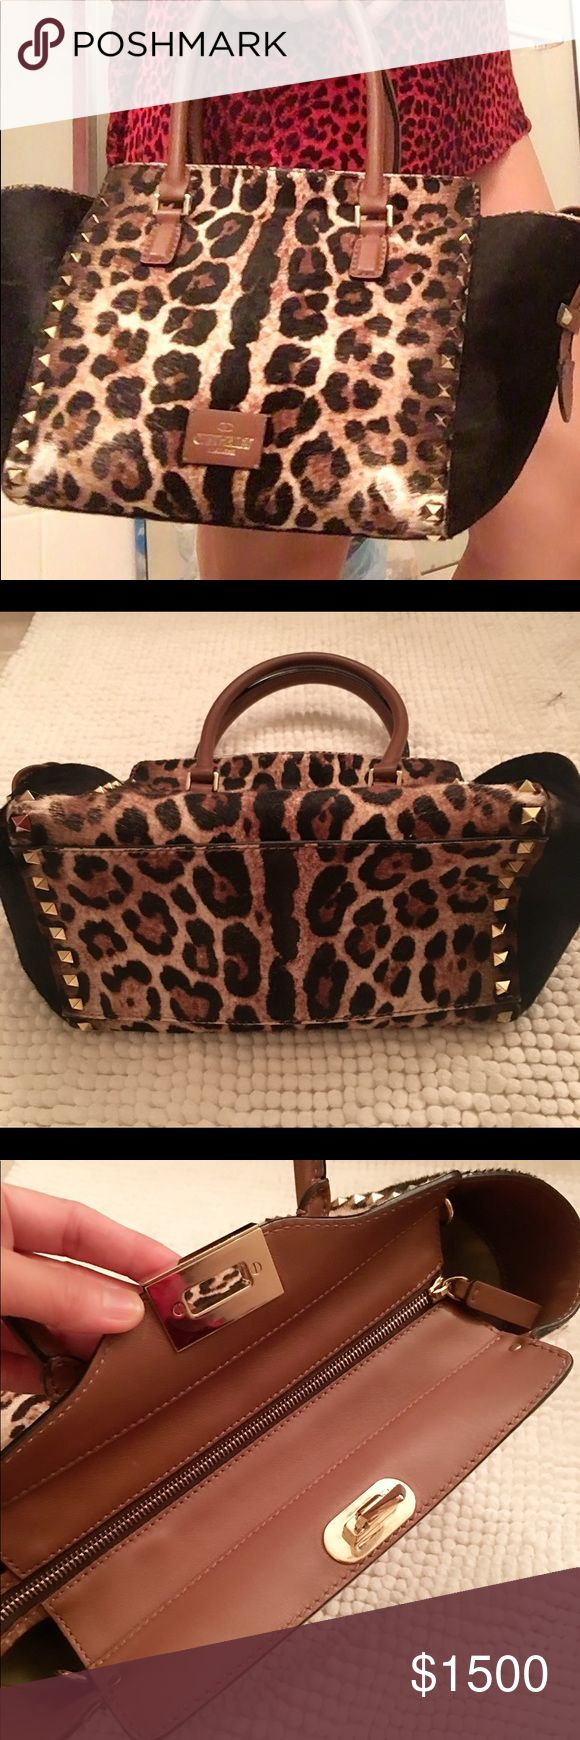 💯auth. VALENTINO ROCK STUD in Leopard pony hair Limited edition and sold out Valentino rockstud. Re listing bag. Still available for sale or trade. Check other listing of this for additional details and info. Inside bag is immaculately clean, no smell, pet and smoke free. Minor bald spotting, check pics. and this doesn't affect the look of the bag. Authenticity guaranteed as shown, attached inside the bag. This bag was Pre owned. No strap when I received it. It's gorgeous and still an IT…